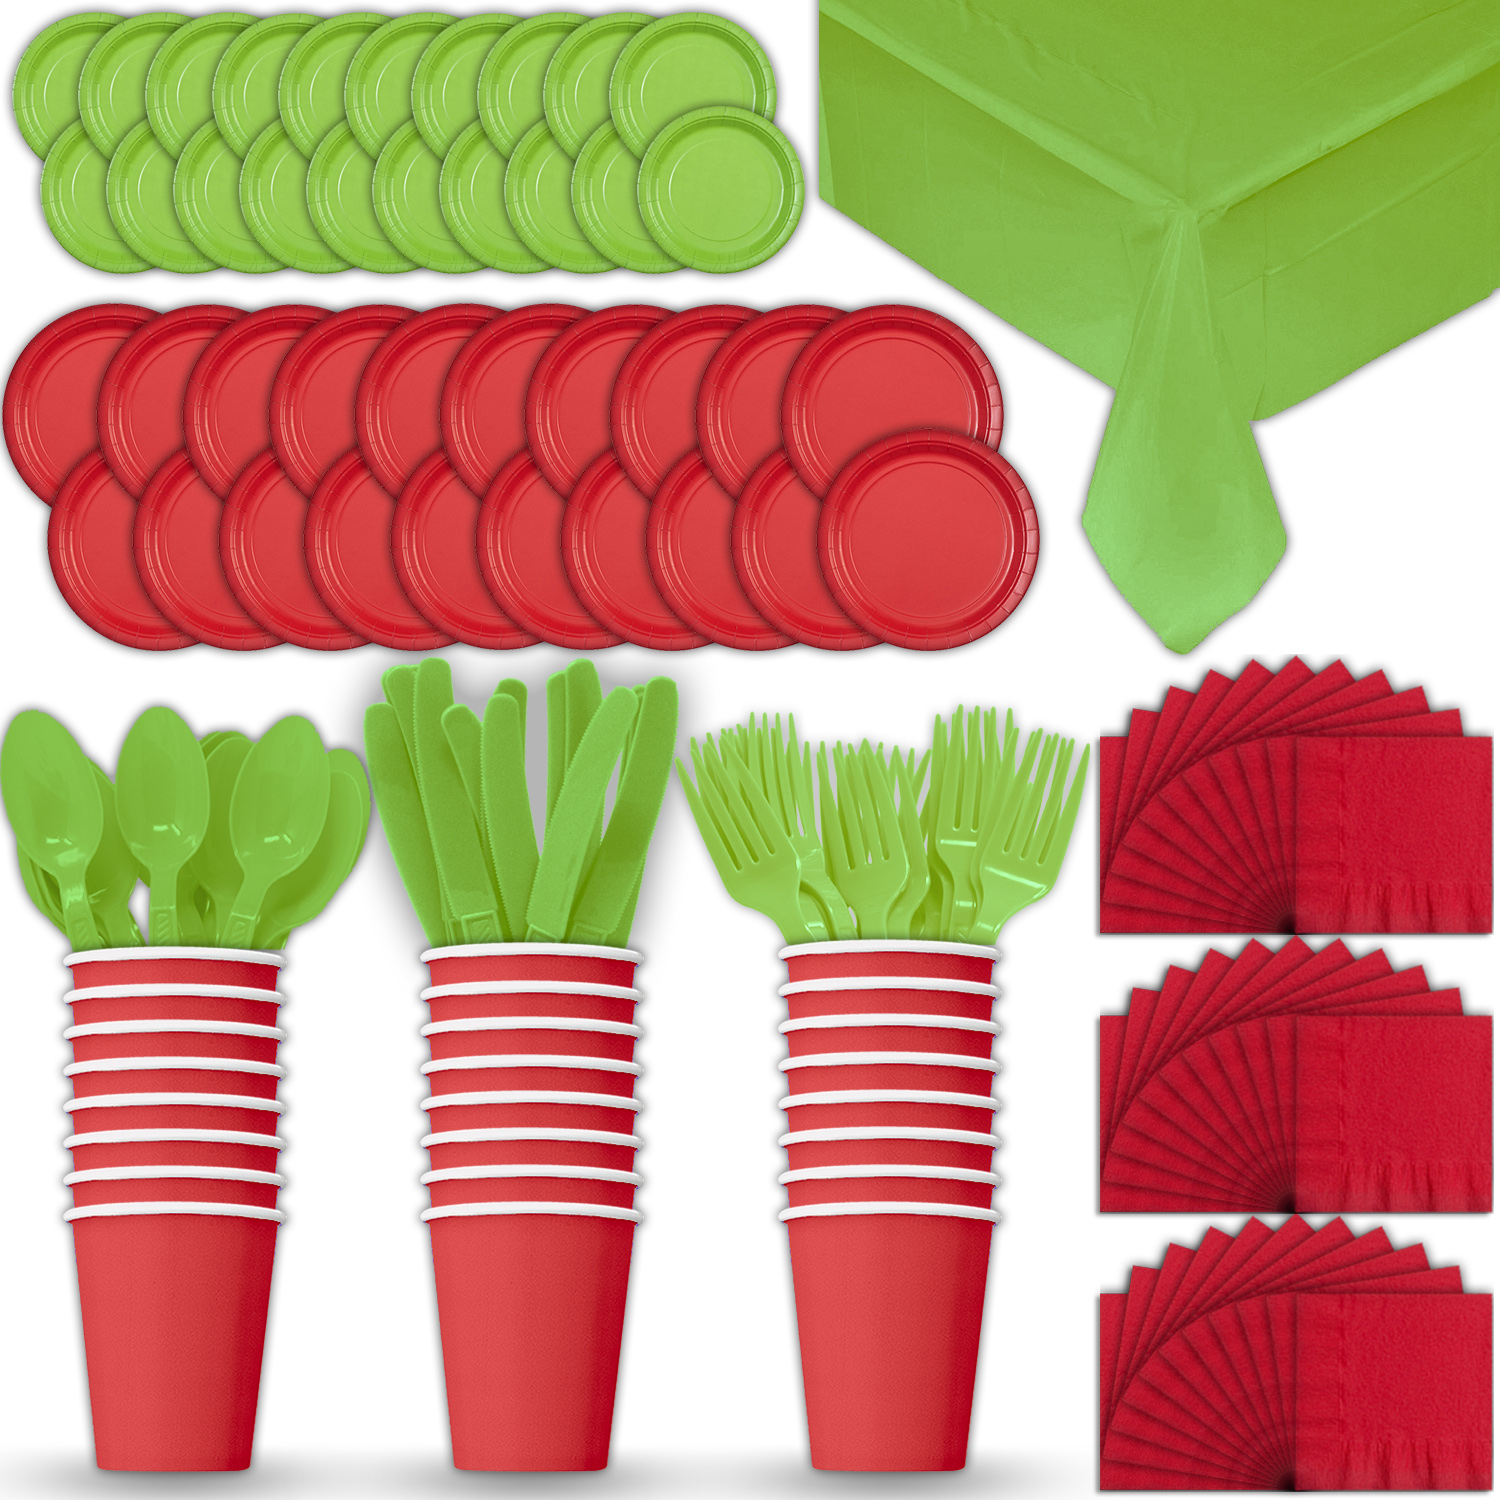 Paper Tableware Set for 24 - Red & Lime Green - Dinner and Dessert Plates, Cups, Napkins, Cutlery (Spoons, Forks, Knives), and Tablecloths - Full Two-Tone Party Supplies Pack